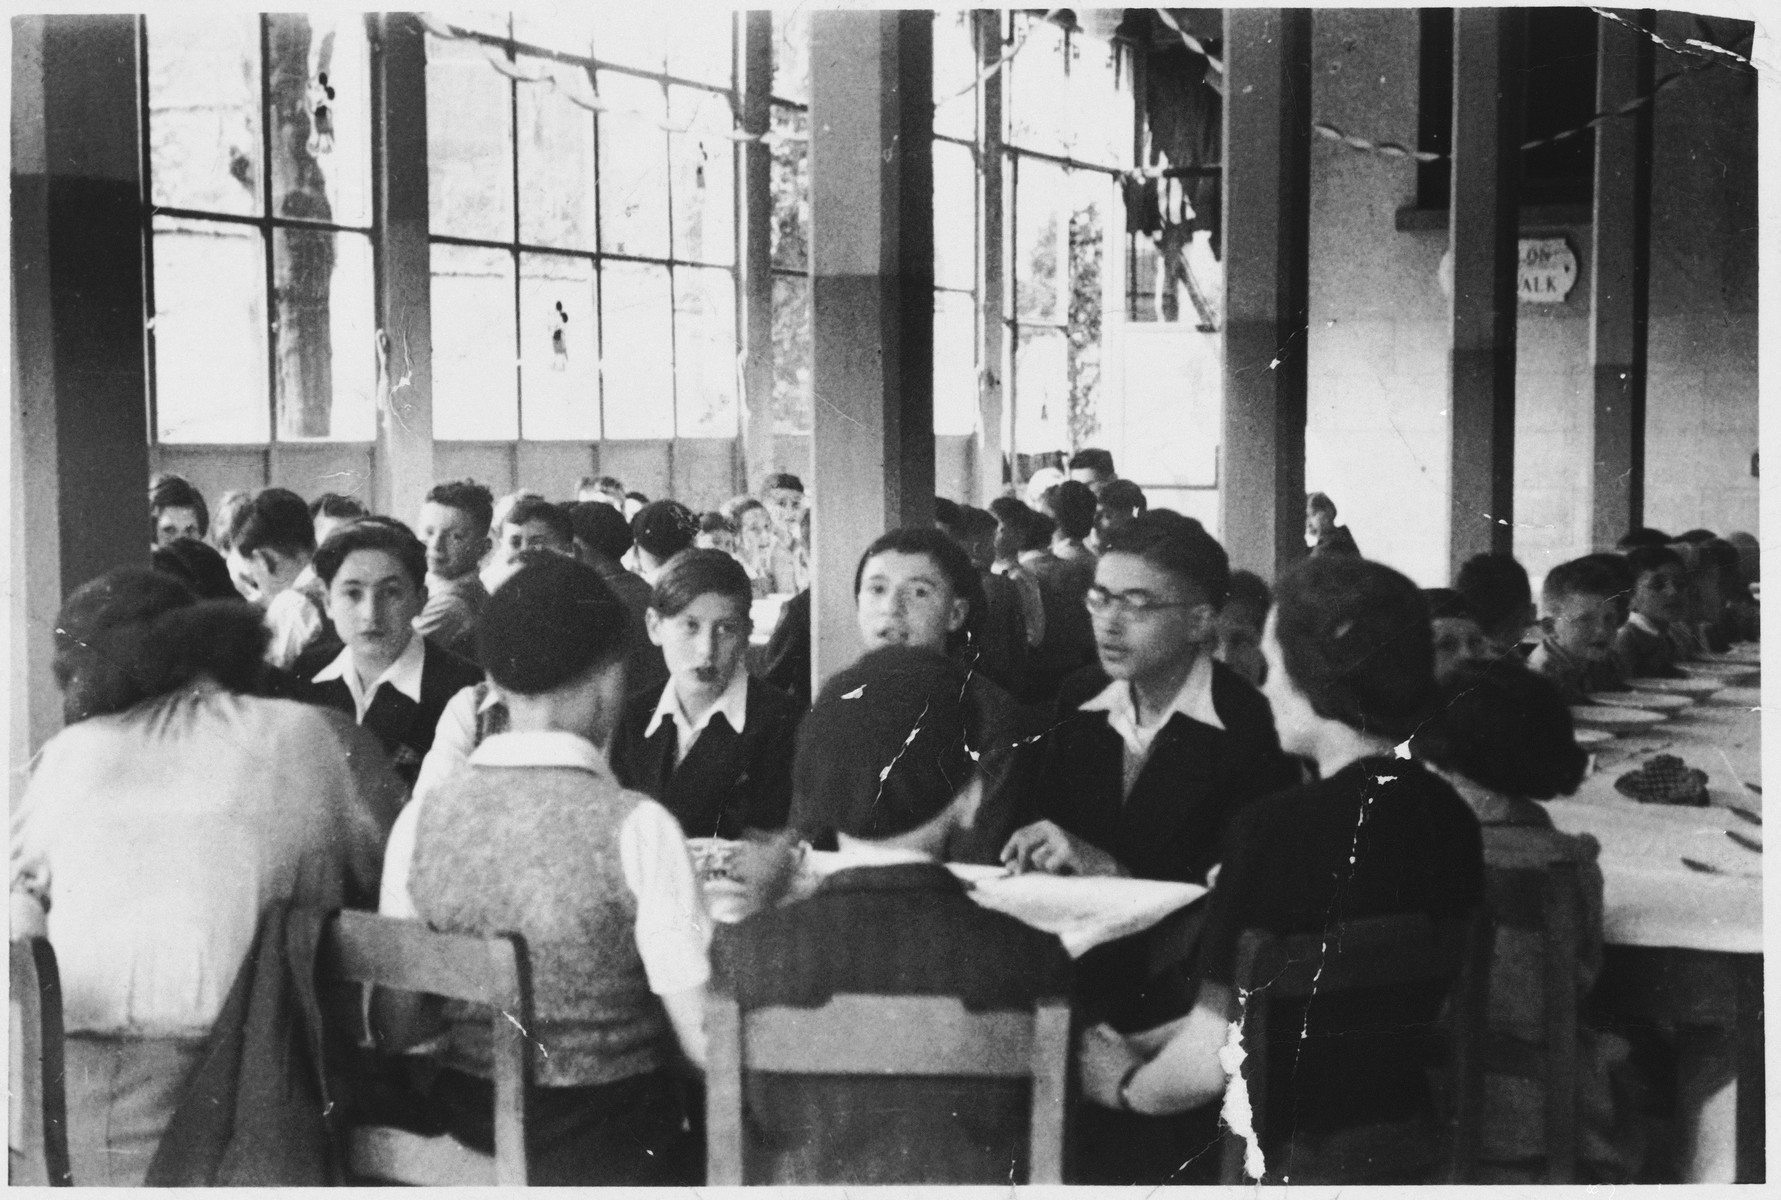 Jewish teenagers celebrate a bar mitzvah in the dining hall of the Wezembeek children's home in Belgium.